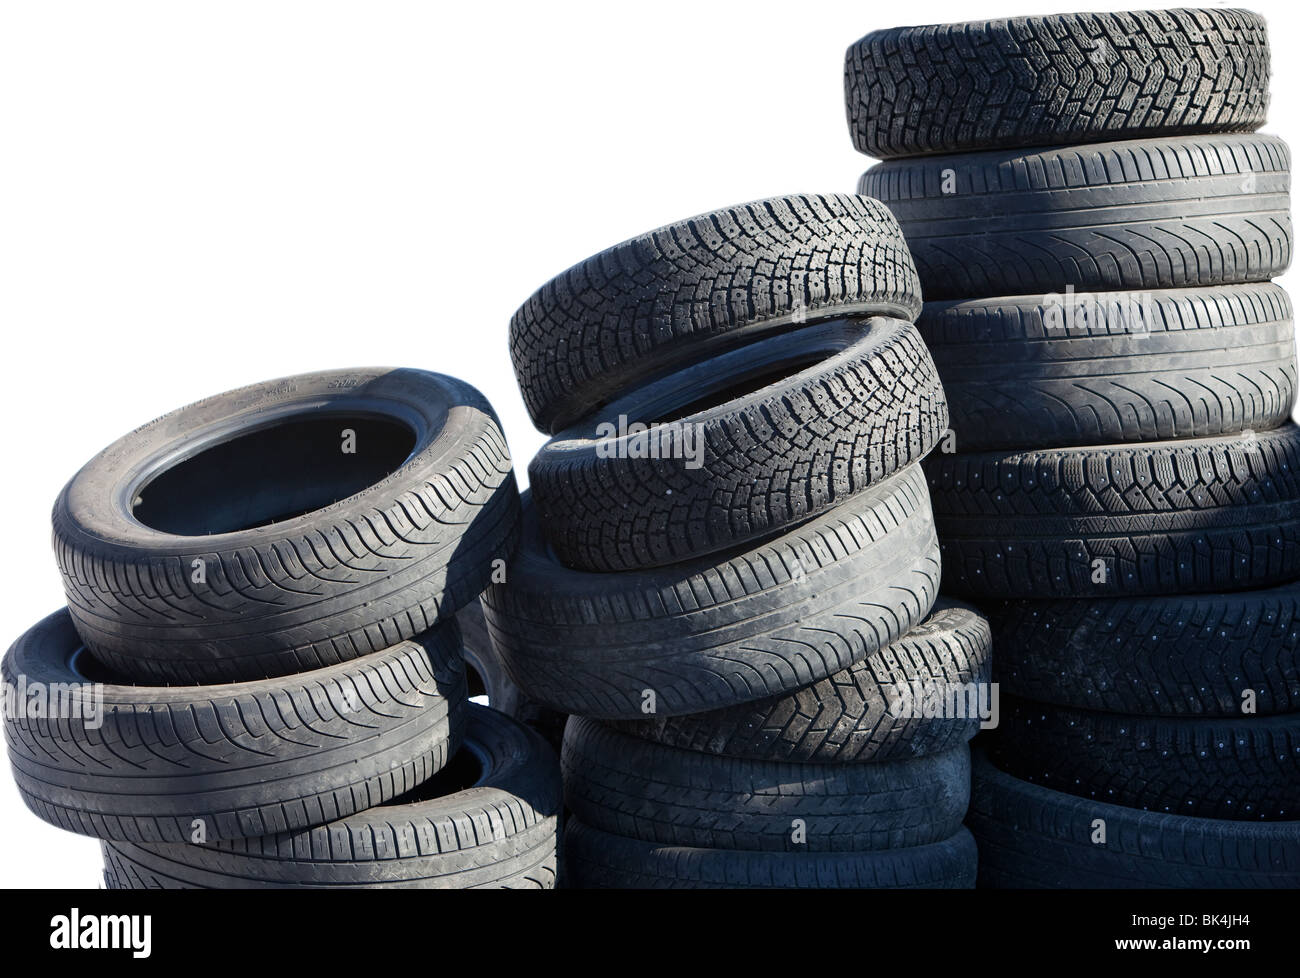 Piles of decommissioned car tyres - Stock Image